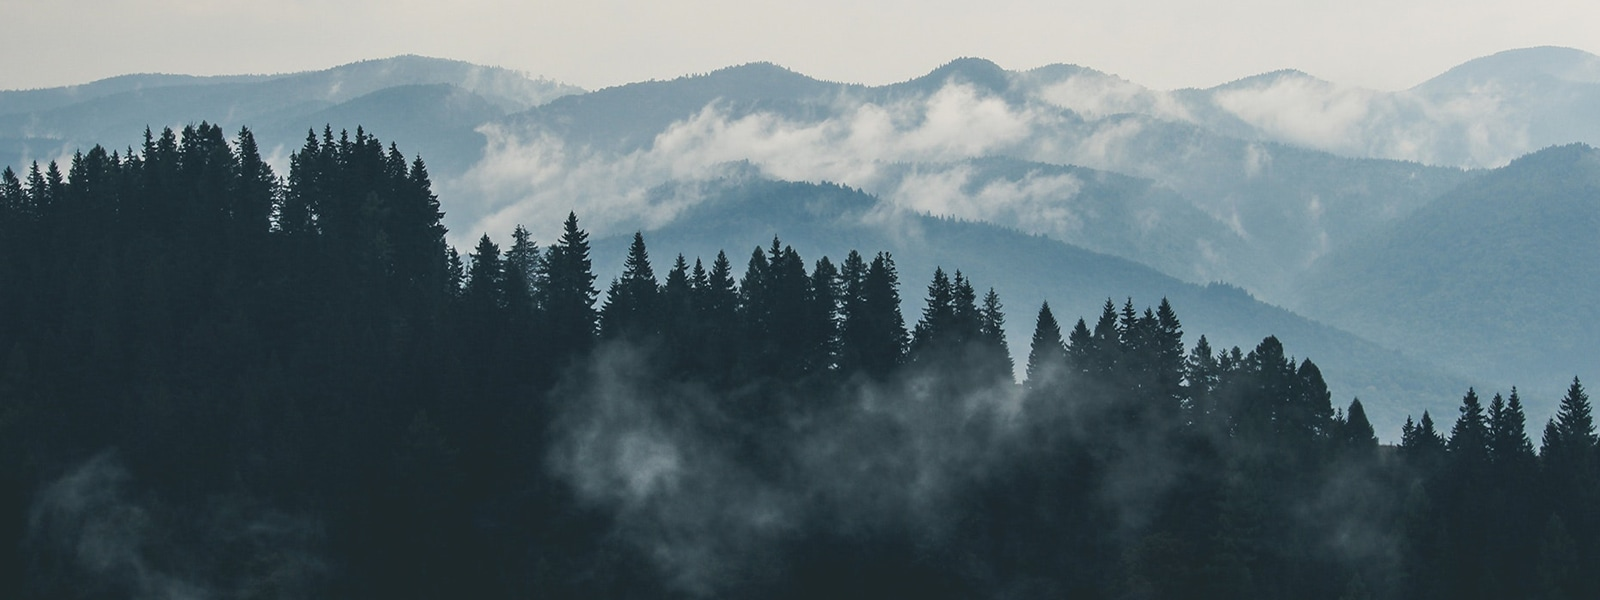 A dark forest in front of a mountain range covered by sparse clouds.